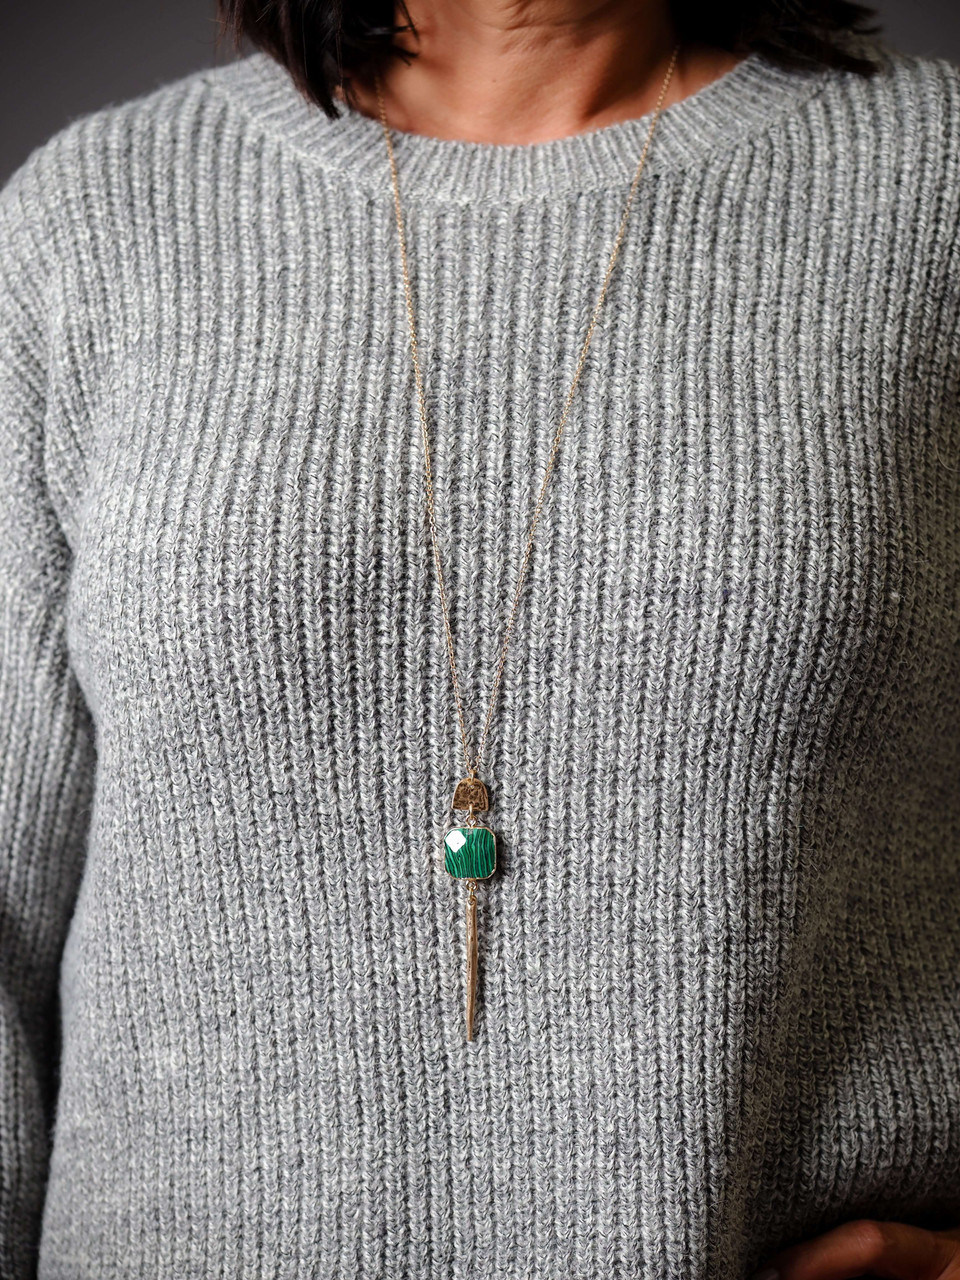 Gold Metal and Malachite Green square stone pendant necklace, Nickle and lead free.